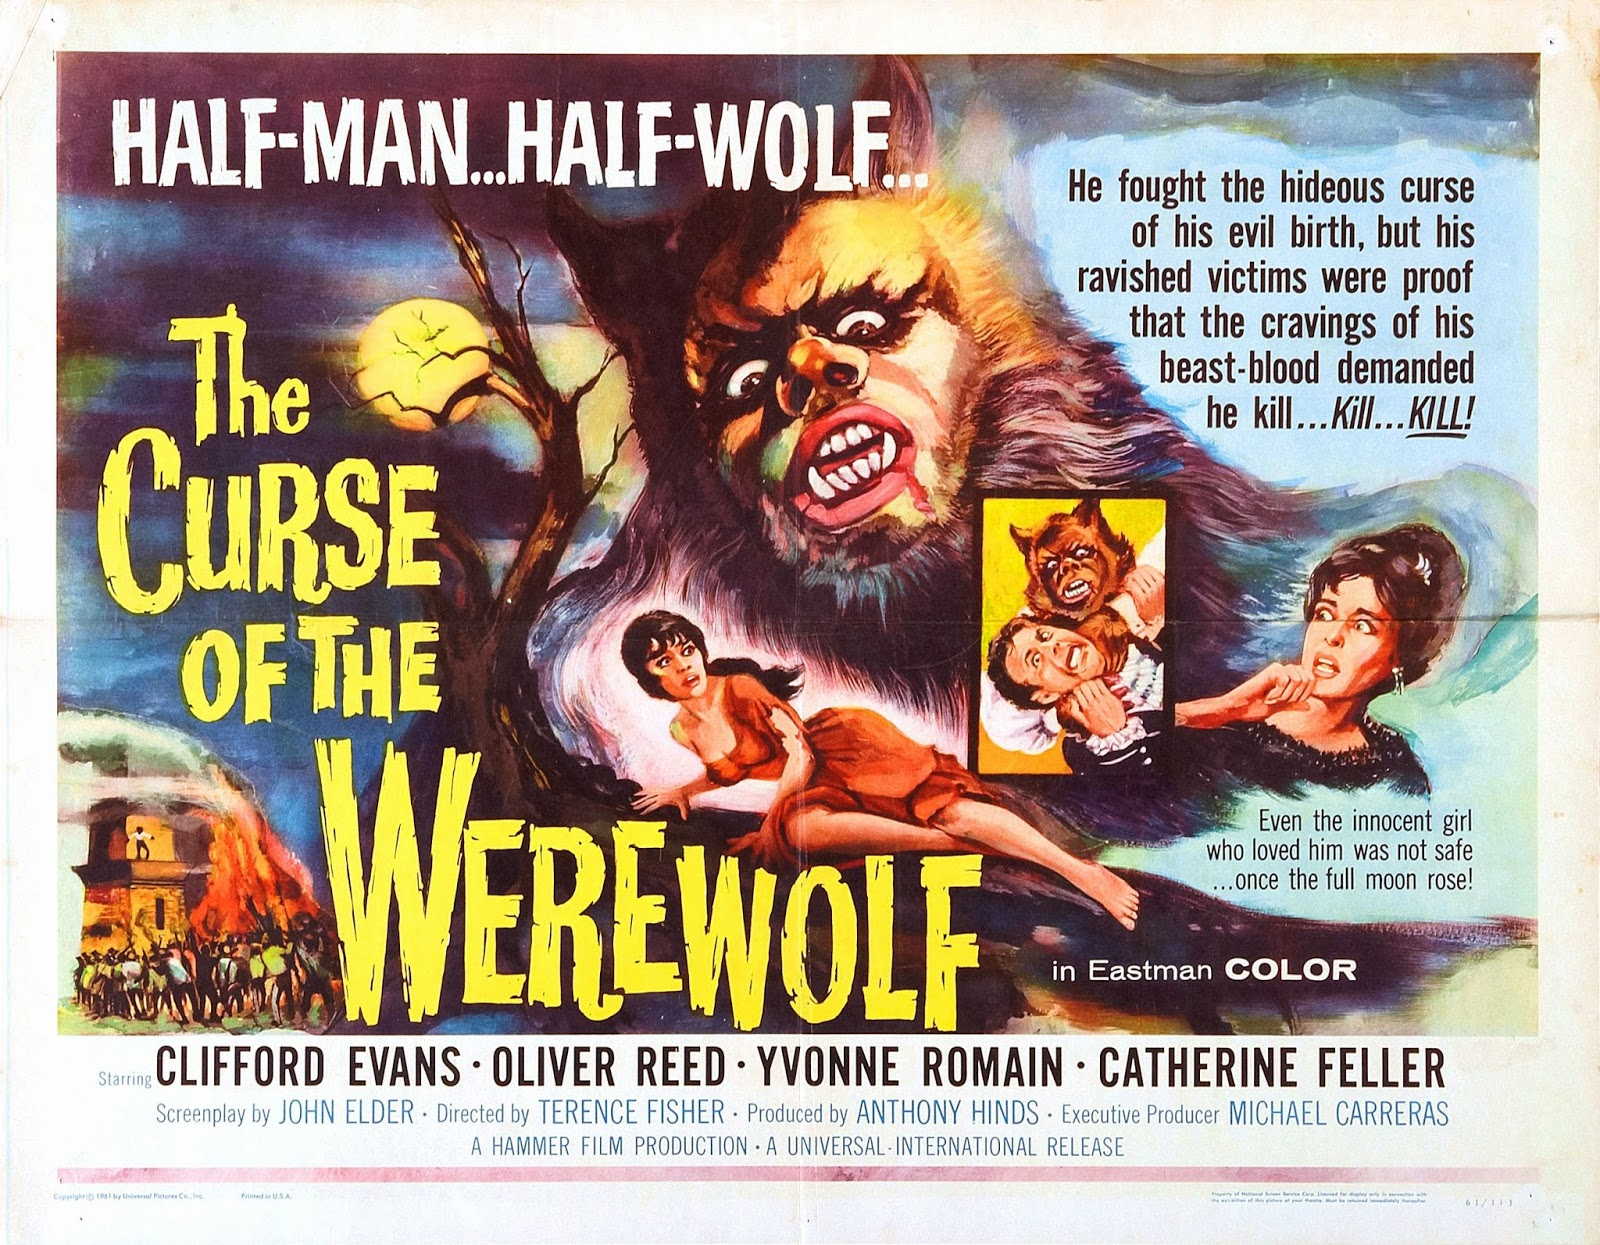 Film Trailers World 1961 Custom E Money Flazz Dan Brizzi Card Design Batman 1 The Curse Of Werewolf